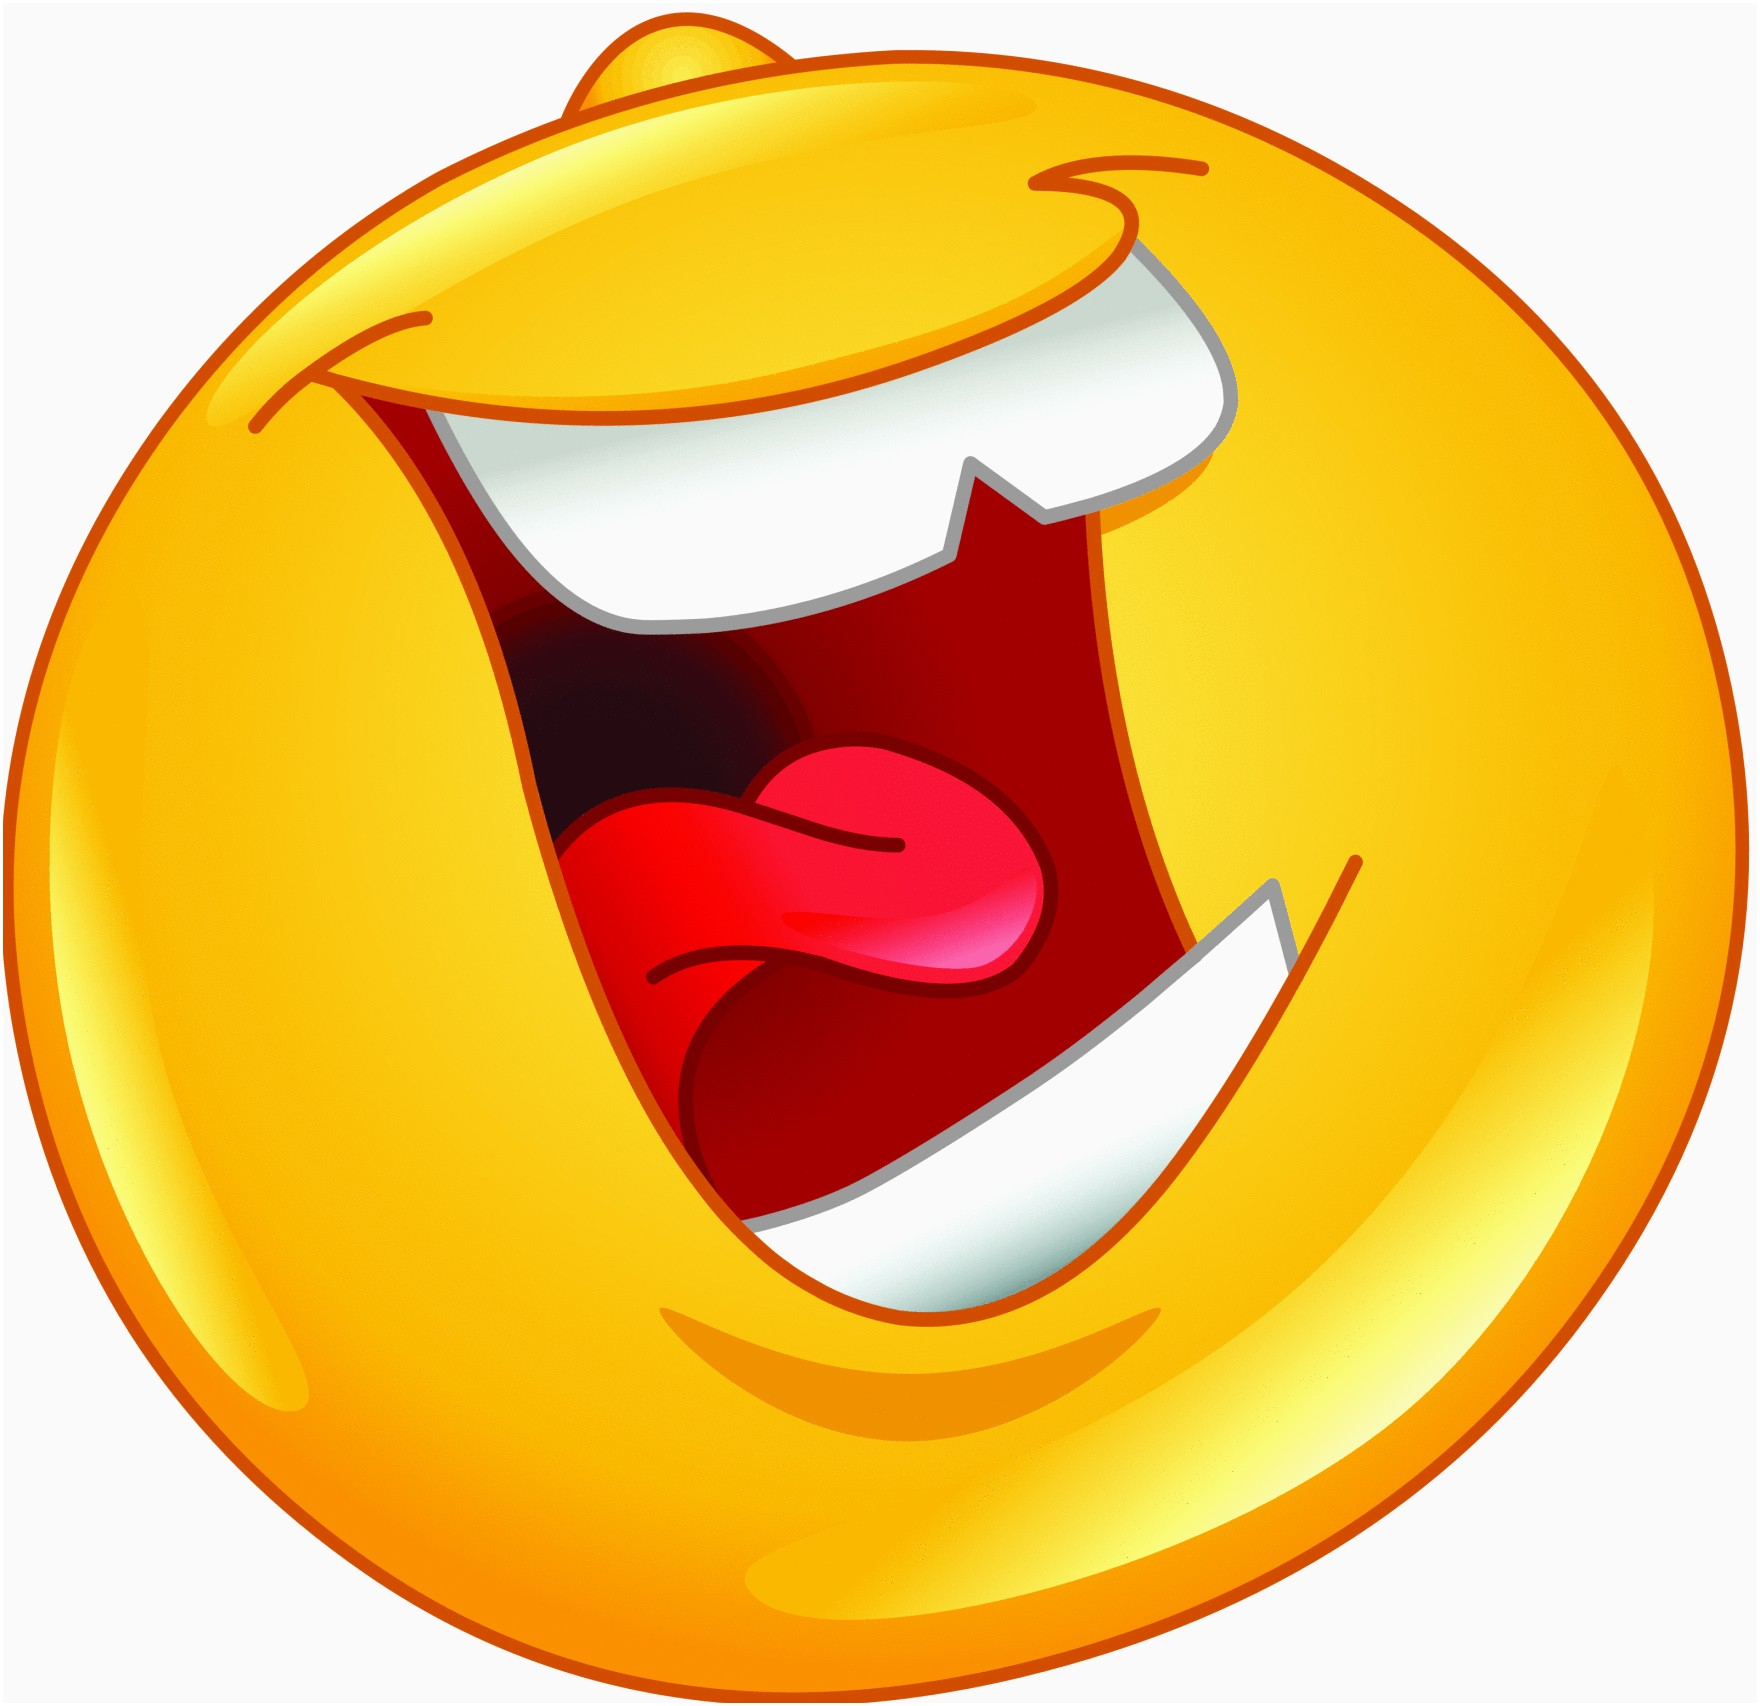 Laughing clipart cartoon. Awesome gold star emoji